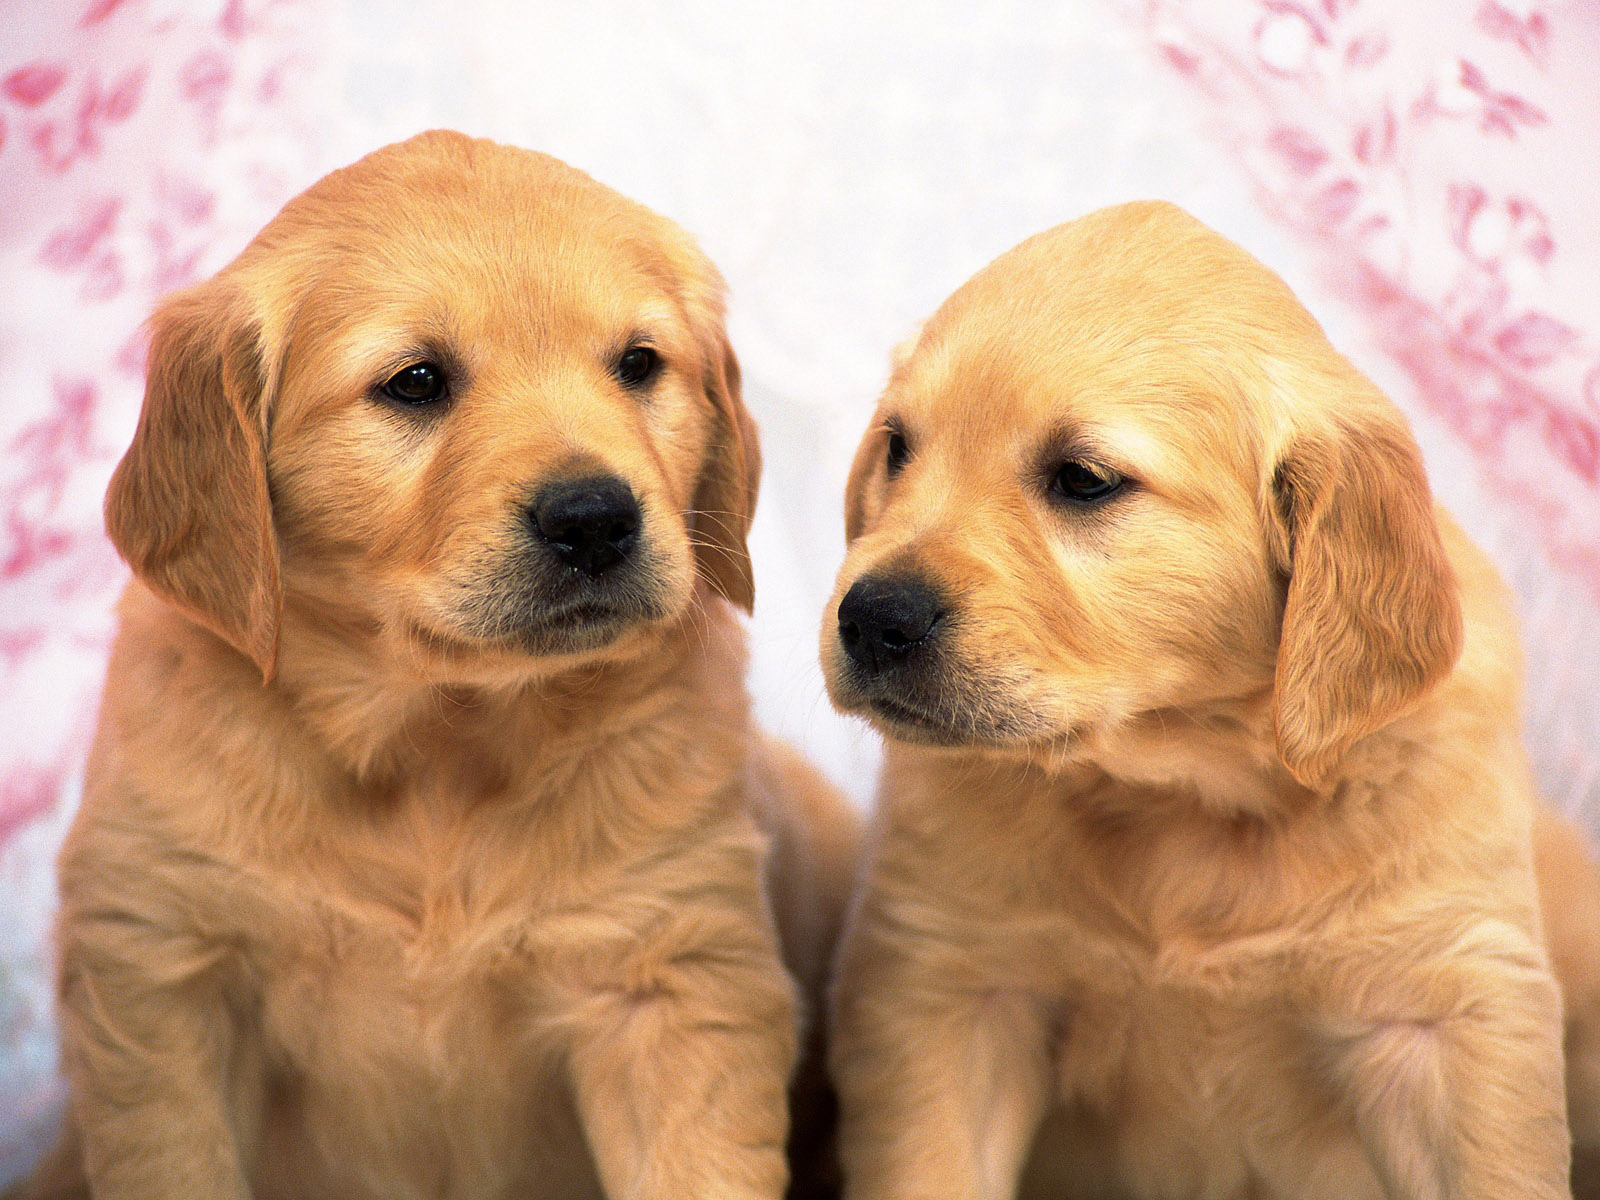 cute puppy pictures A9